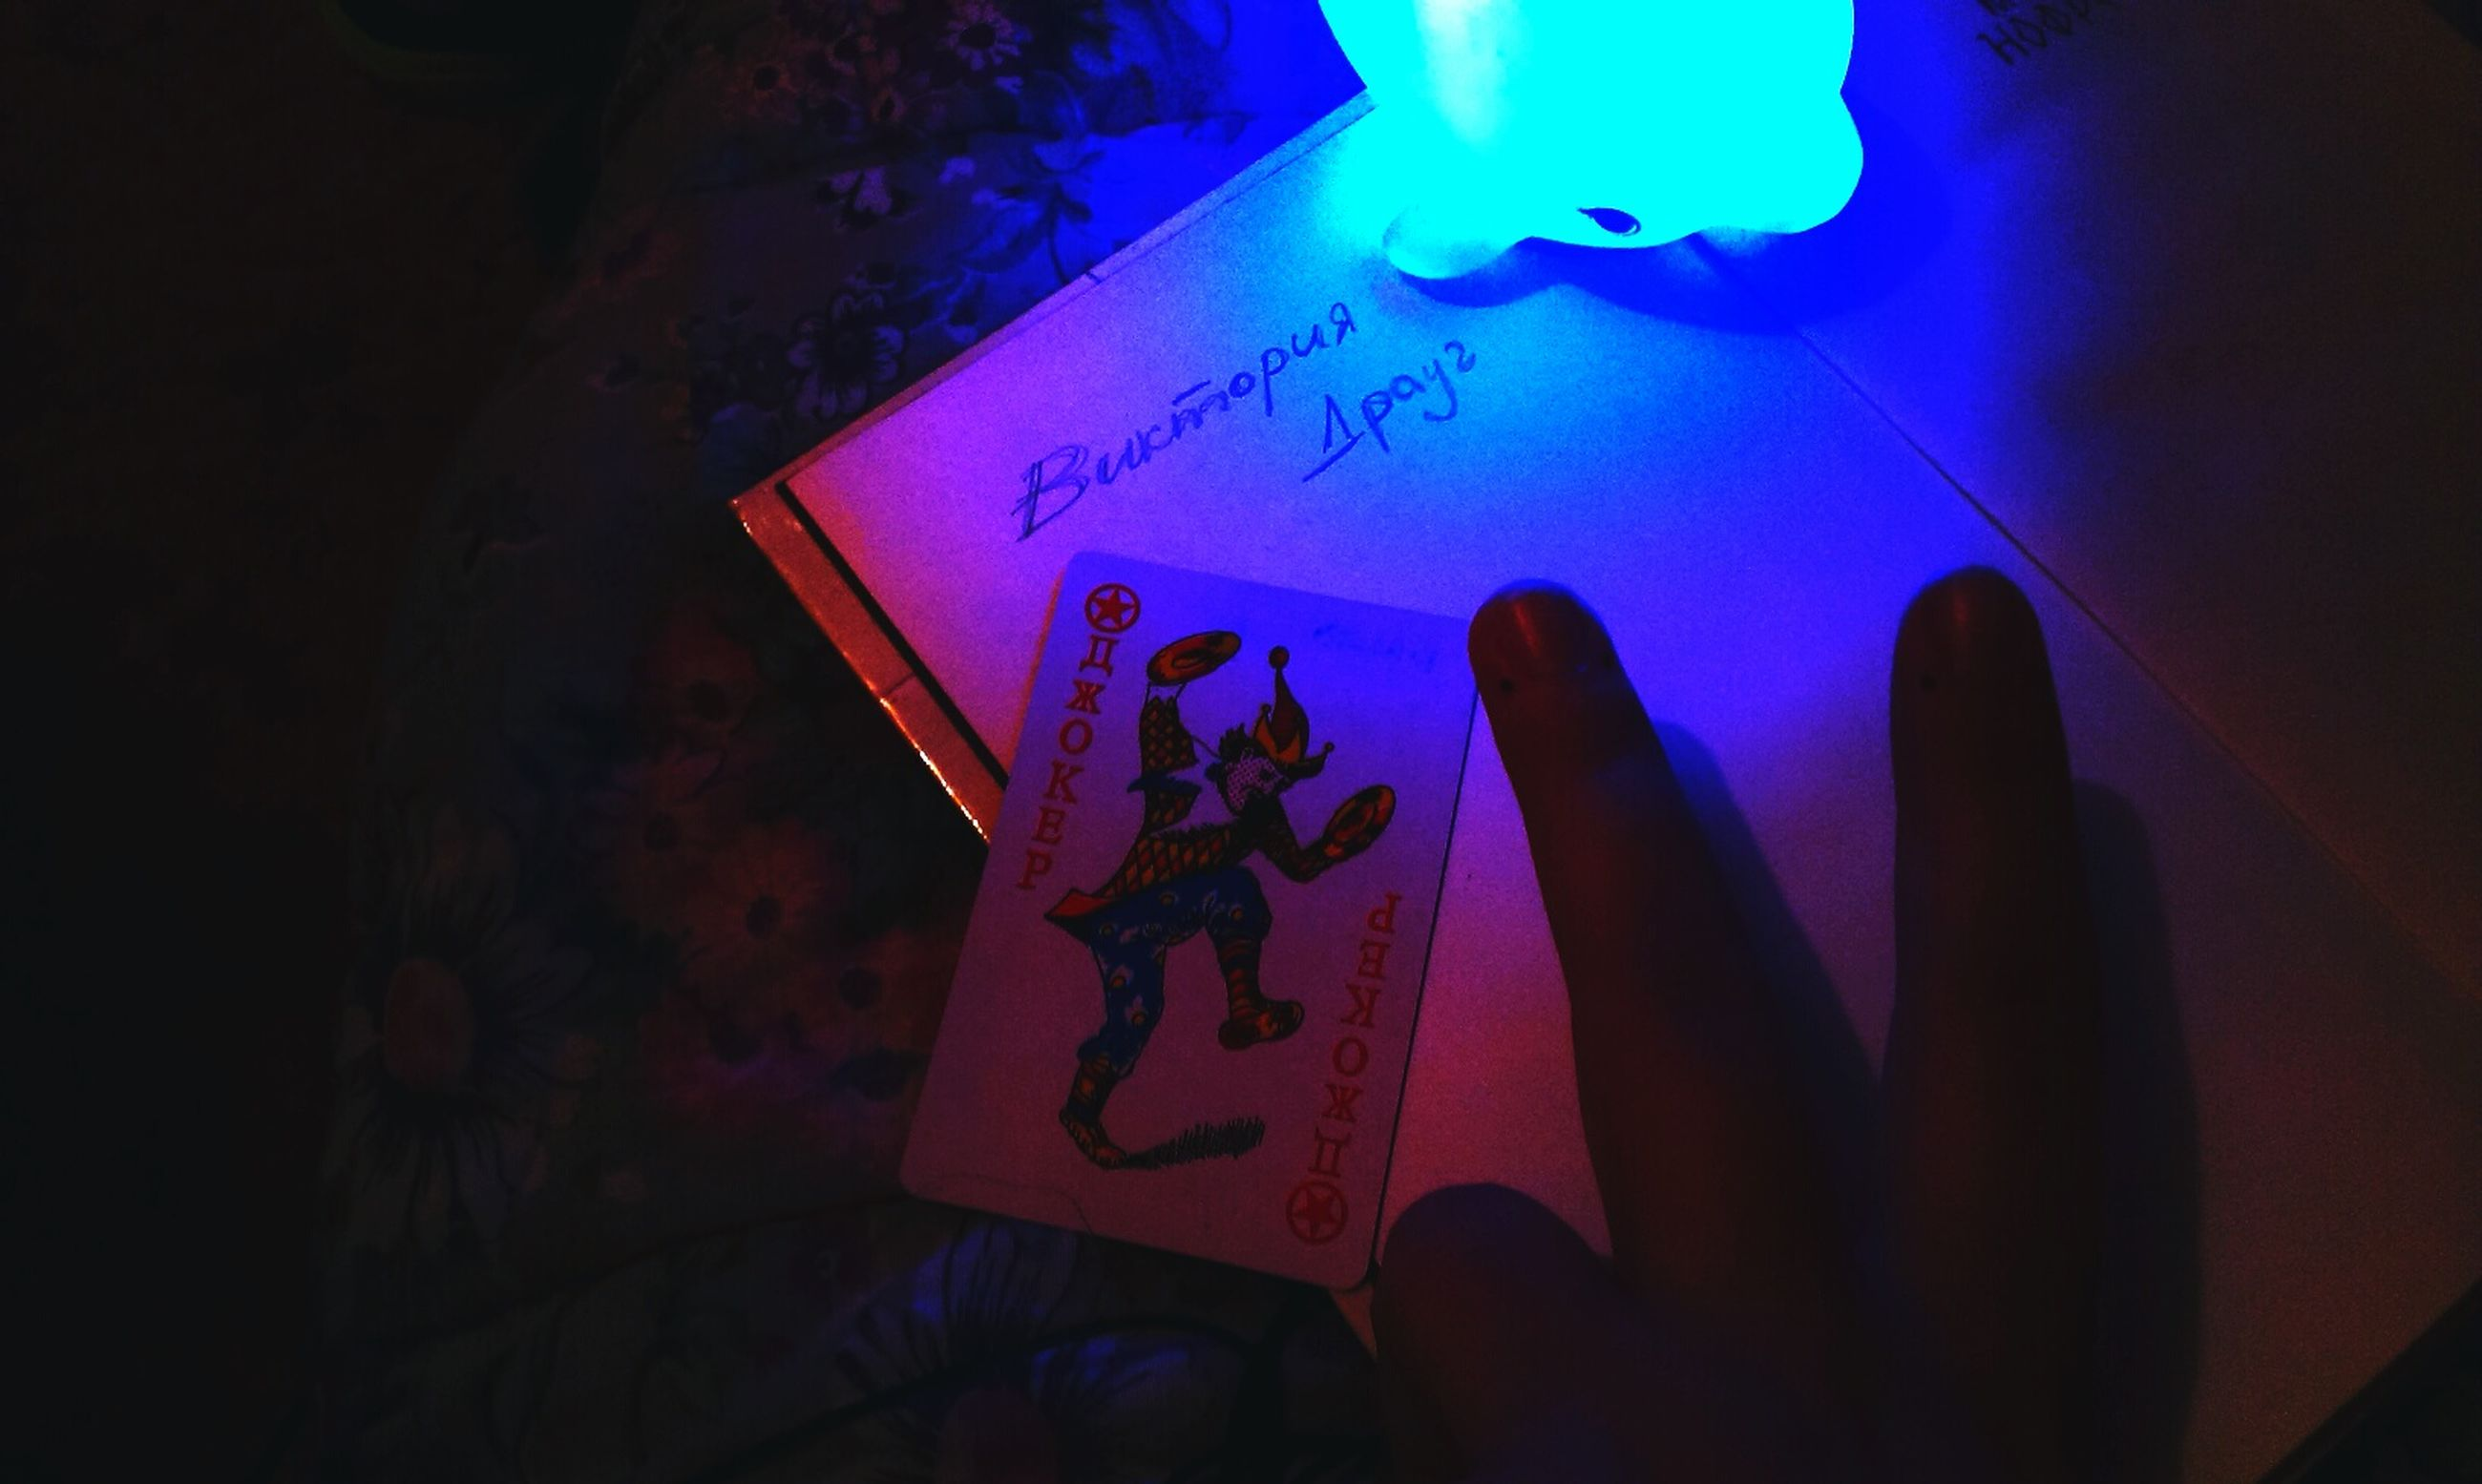 indoors, person, text, illuminated, communication, paper, part of, human finger, close-up, holding, western script, unrecognizable person, cropped, creativity, art, night, men